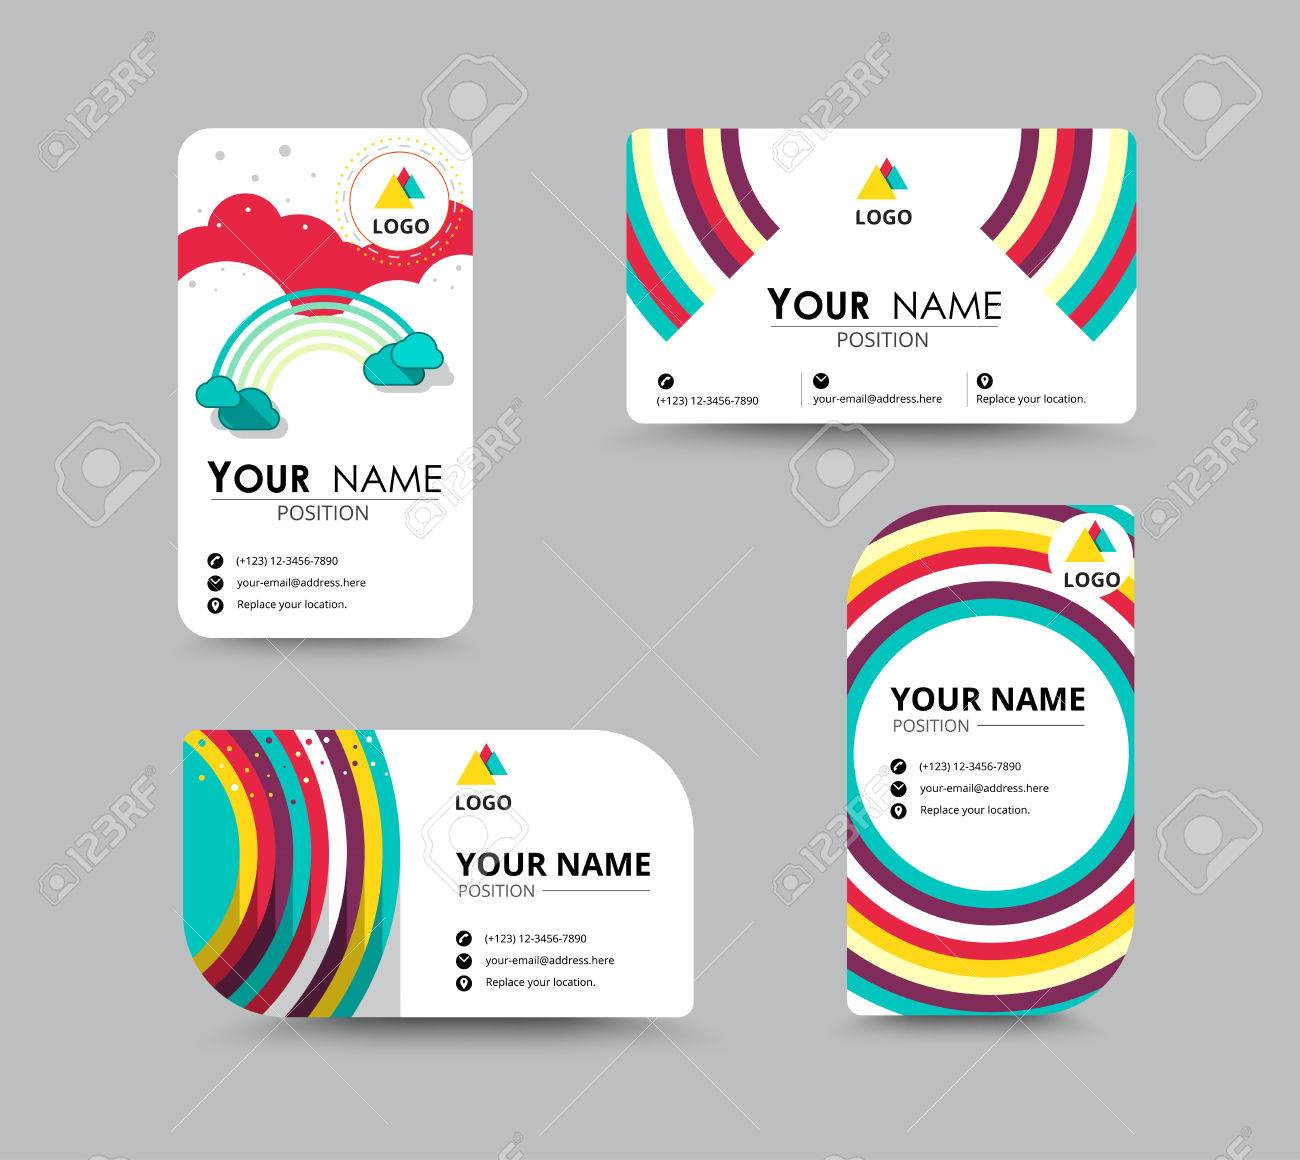 Free Business Greeting Cards Images - Card Design And Card Template